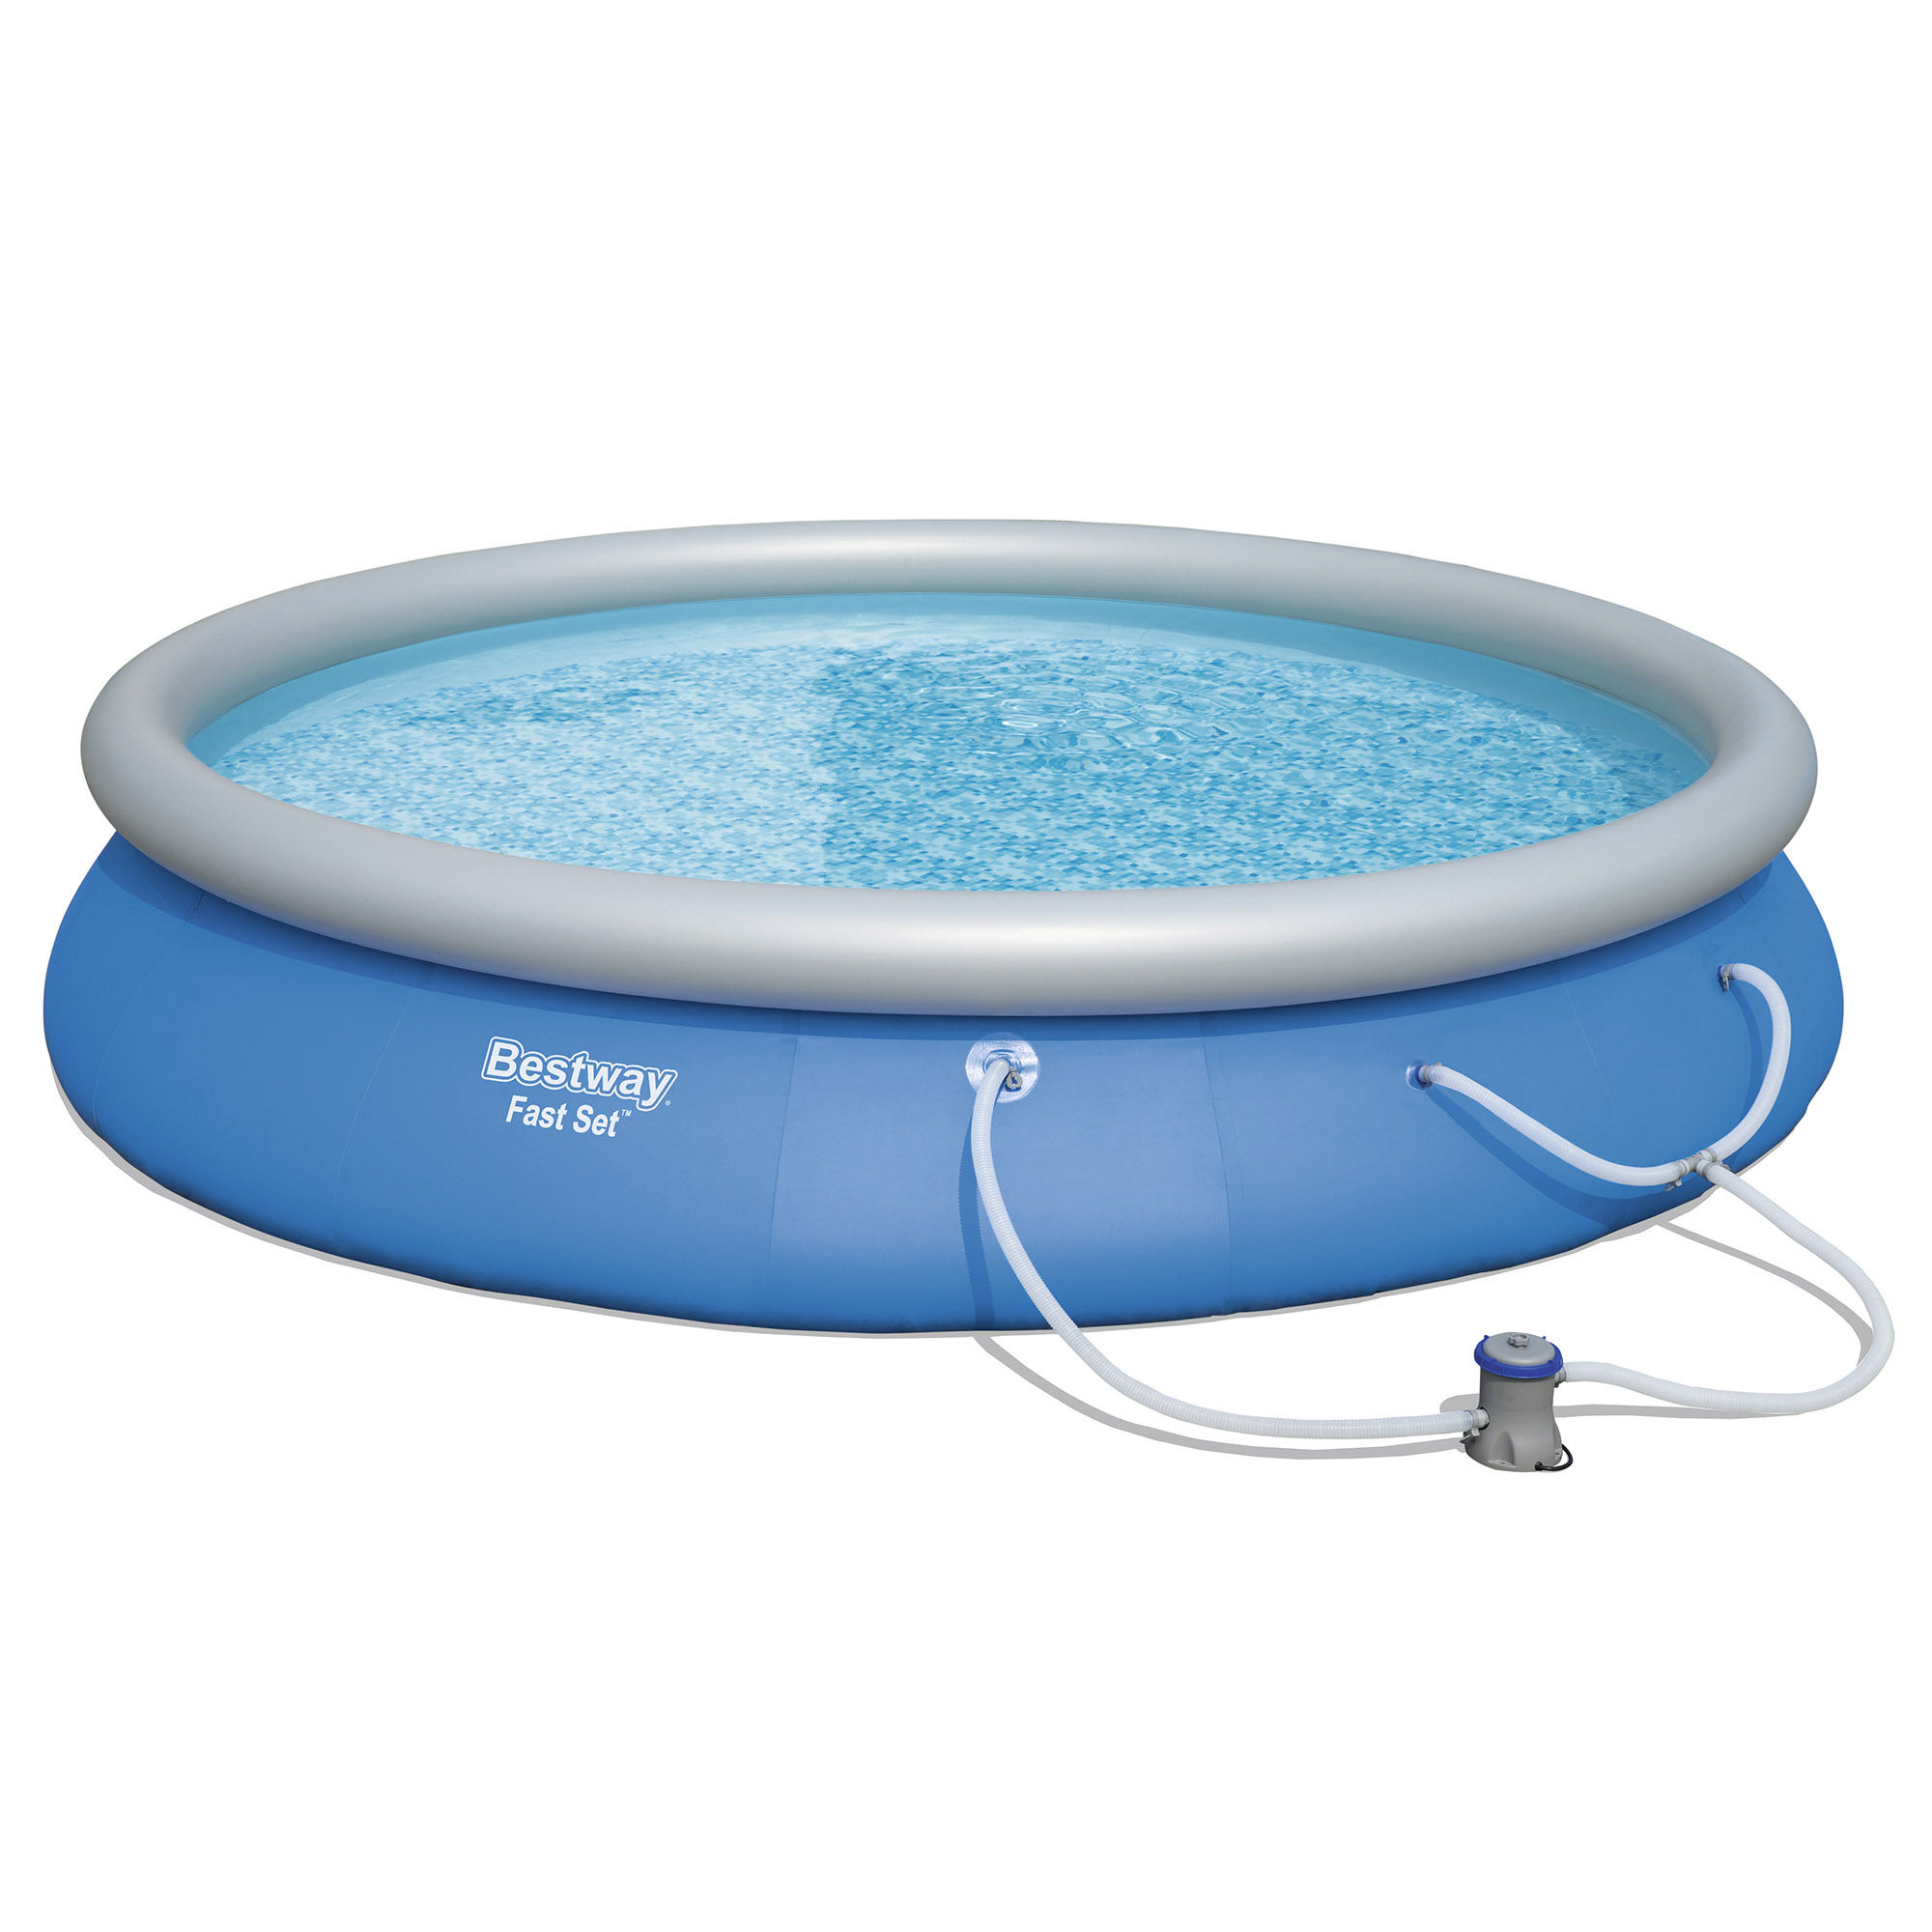 Bestway 15 39 x 33 fast set inflatable above ground for Inflatable above ground pools